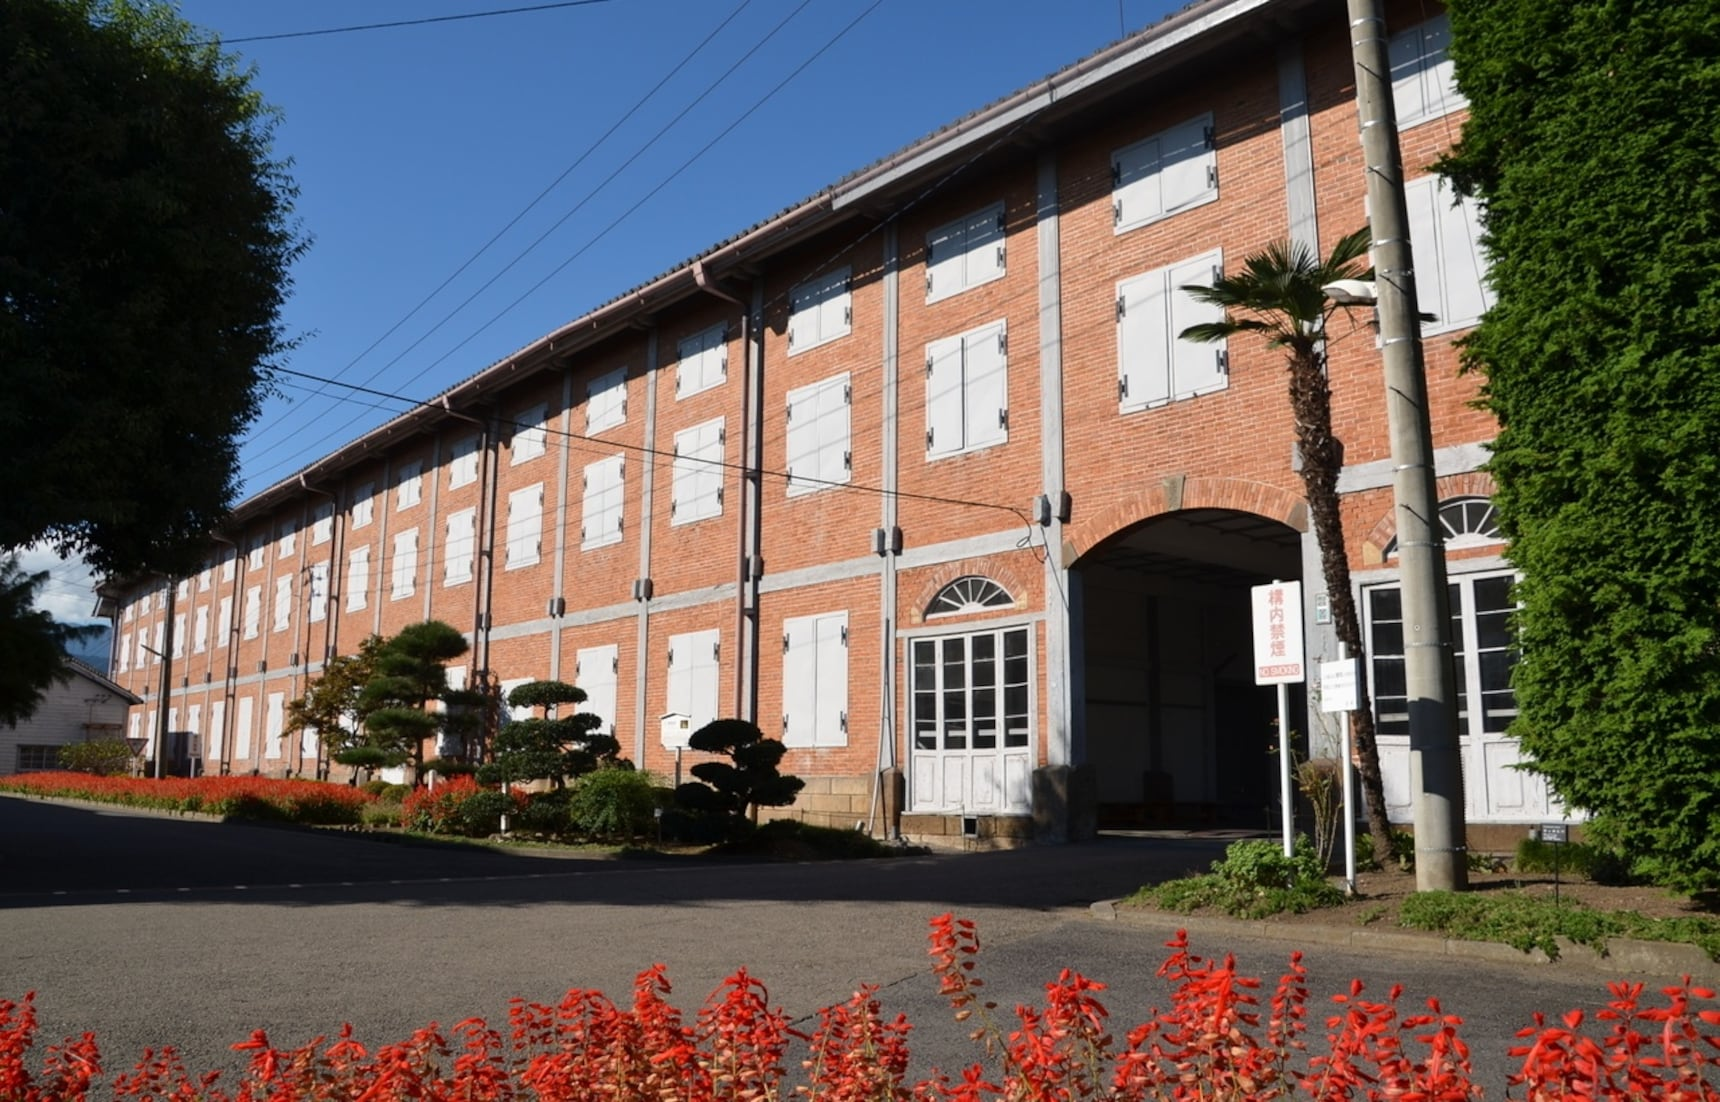 The Tomioka Silk Mill